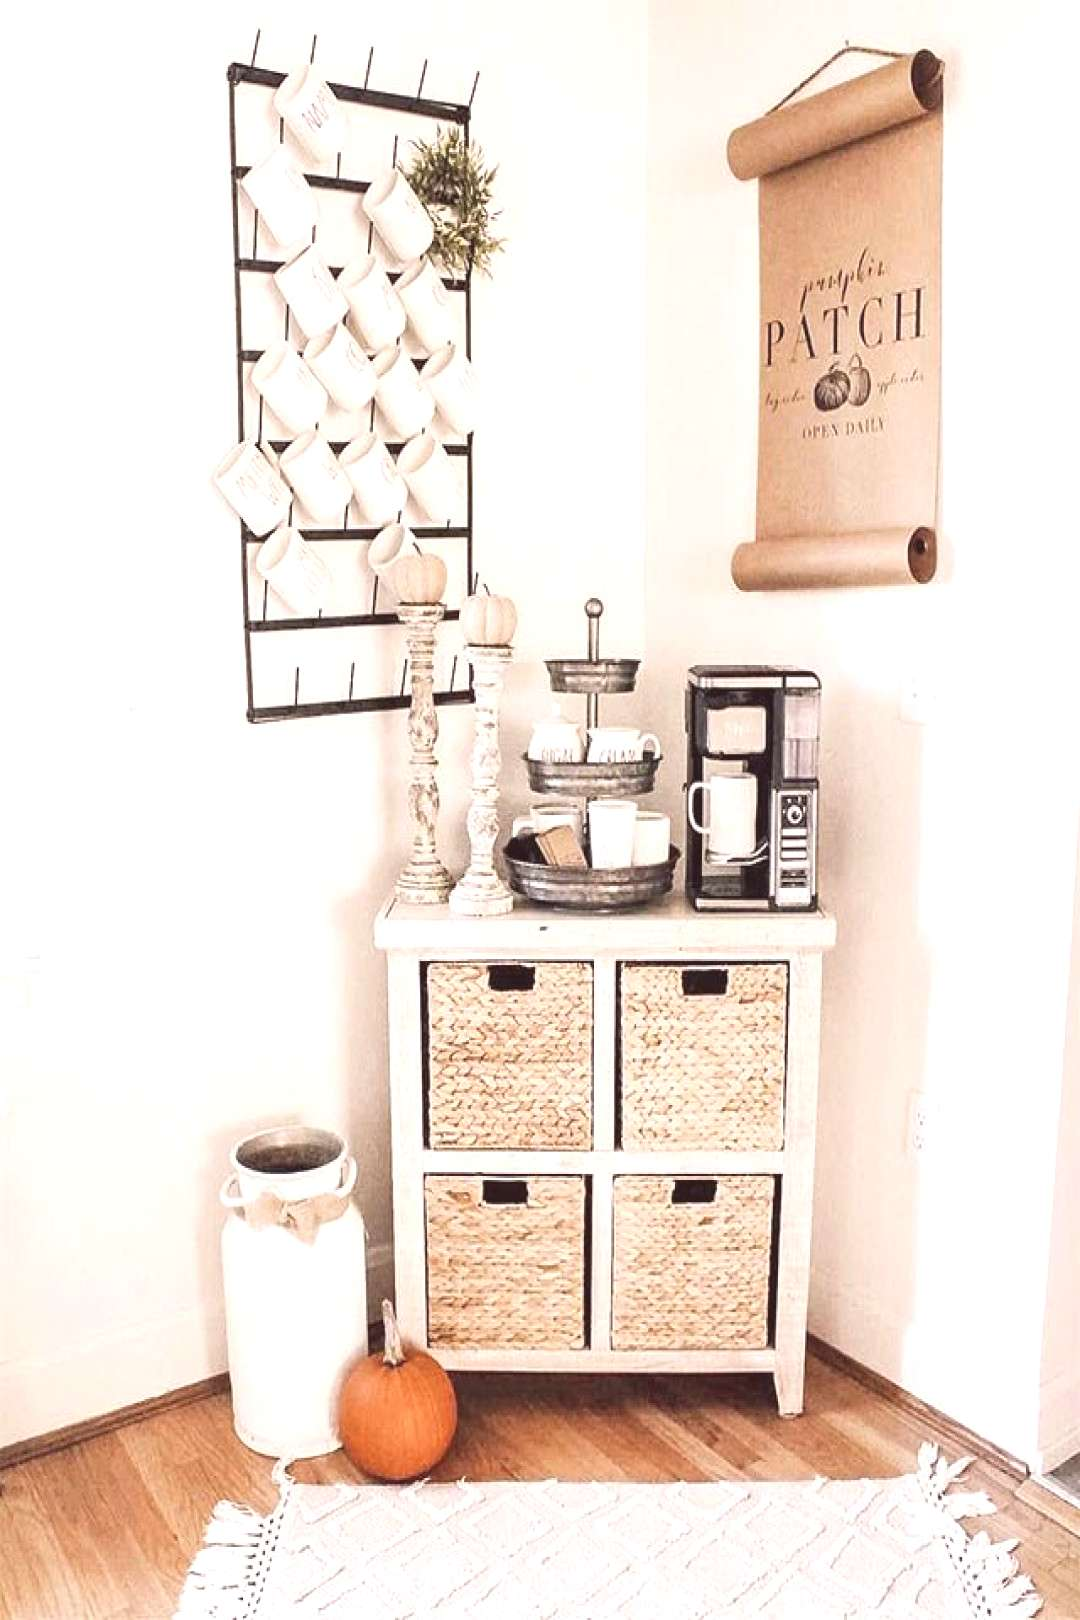 26 Home Coffee Station Ideas to Help You Quit Starbucks | Posh Pennies - Coffee bar home